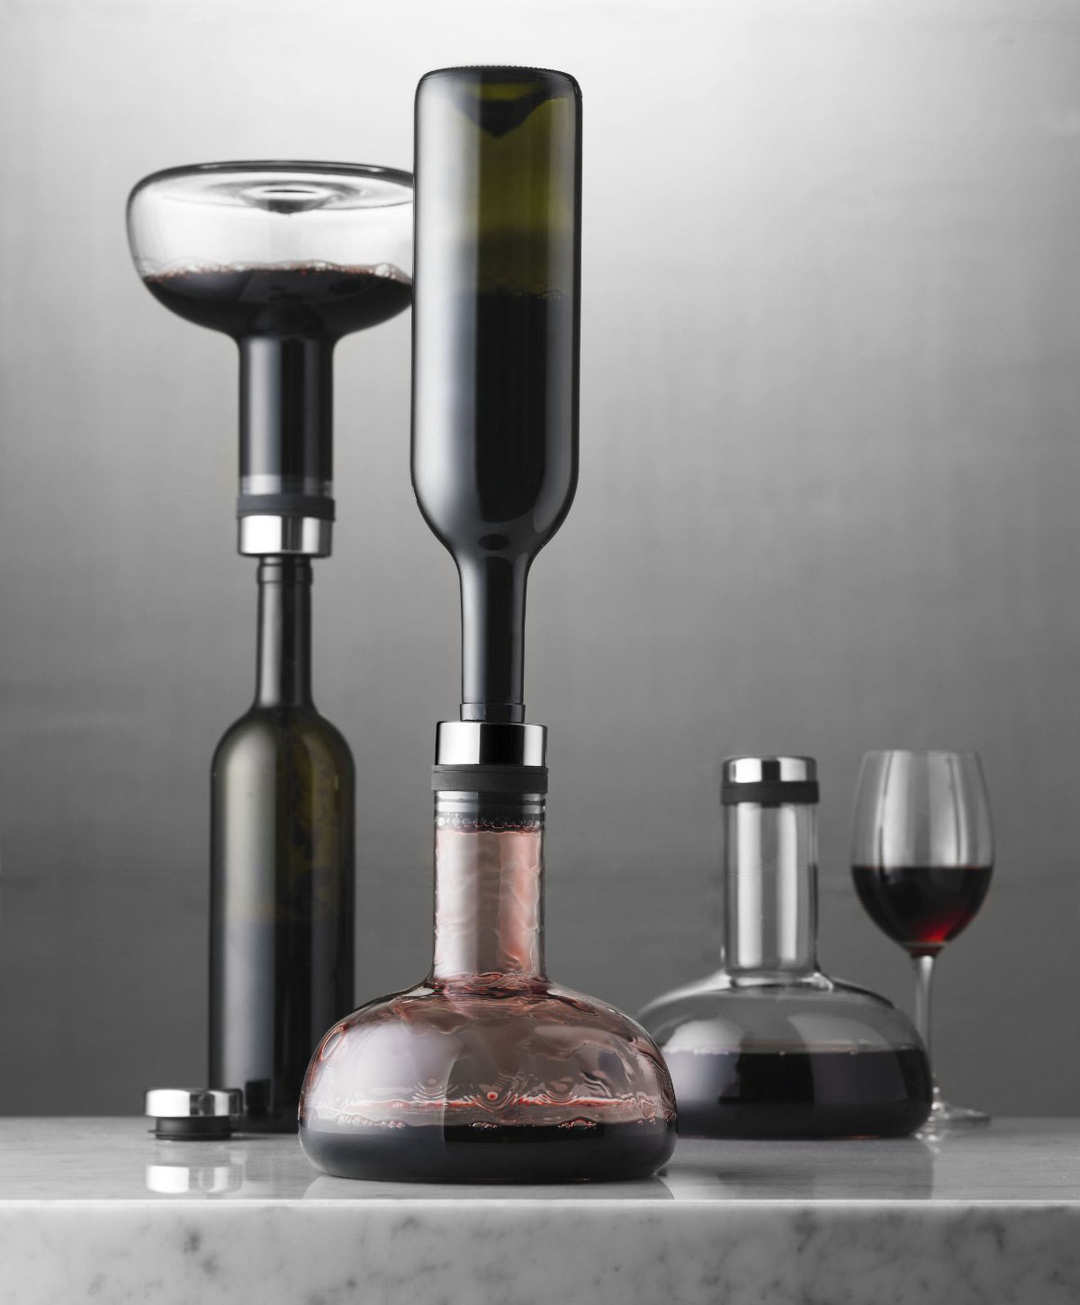 One bottle being aerated right-side up, and one bottle being aerated upside-down.